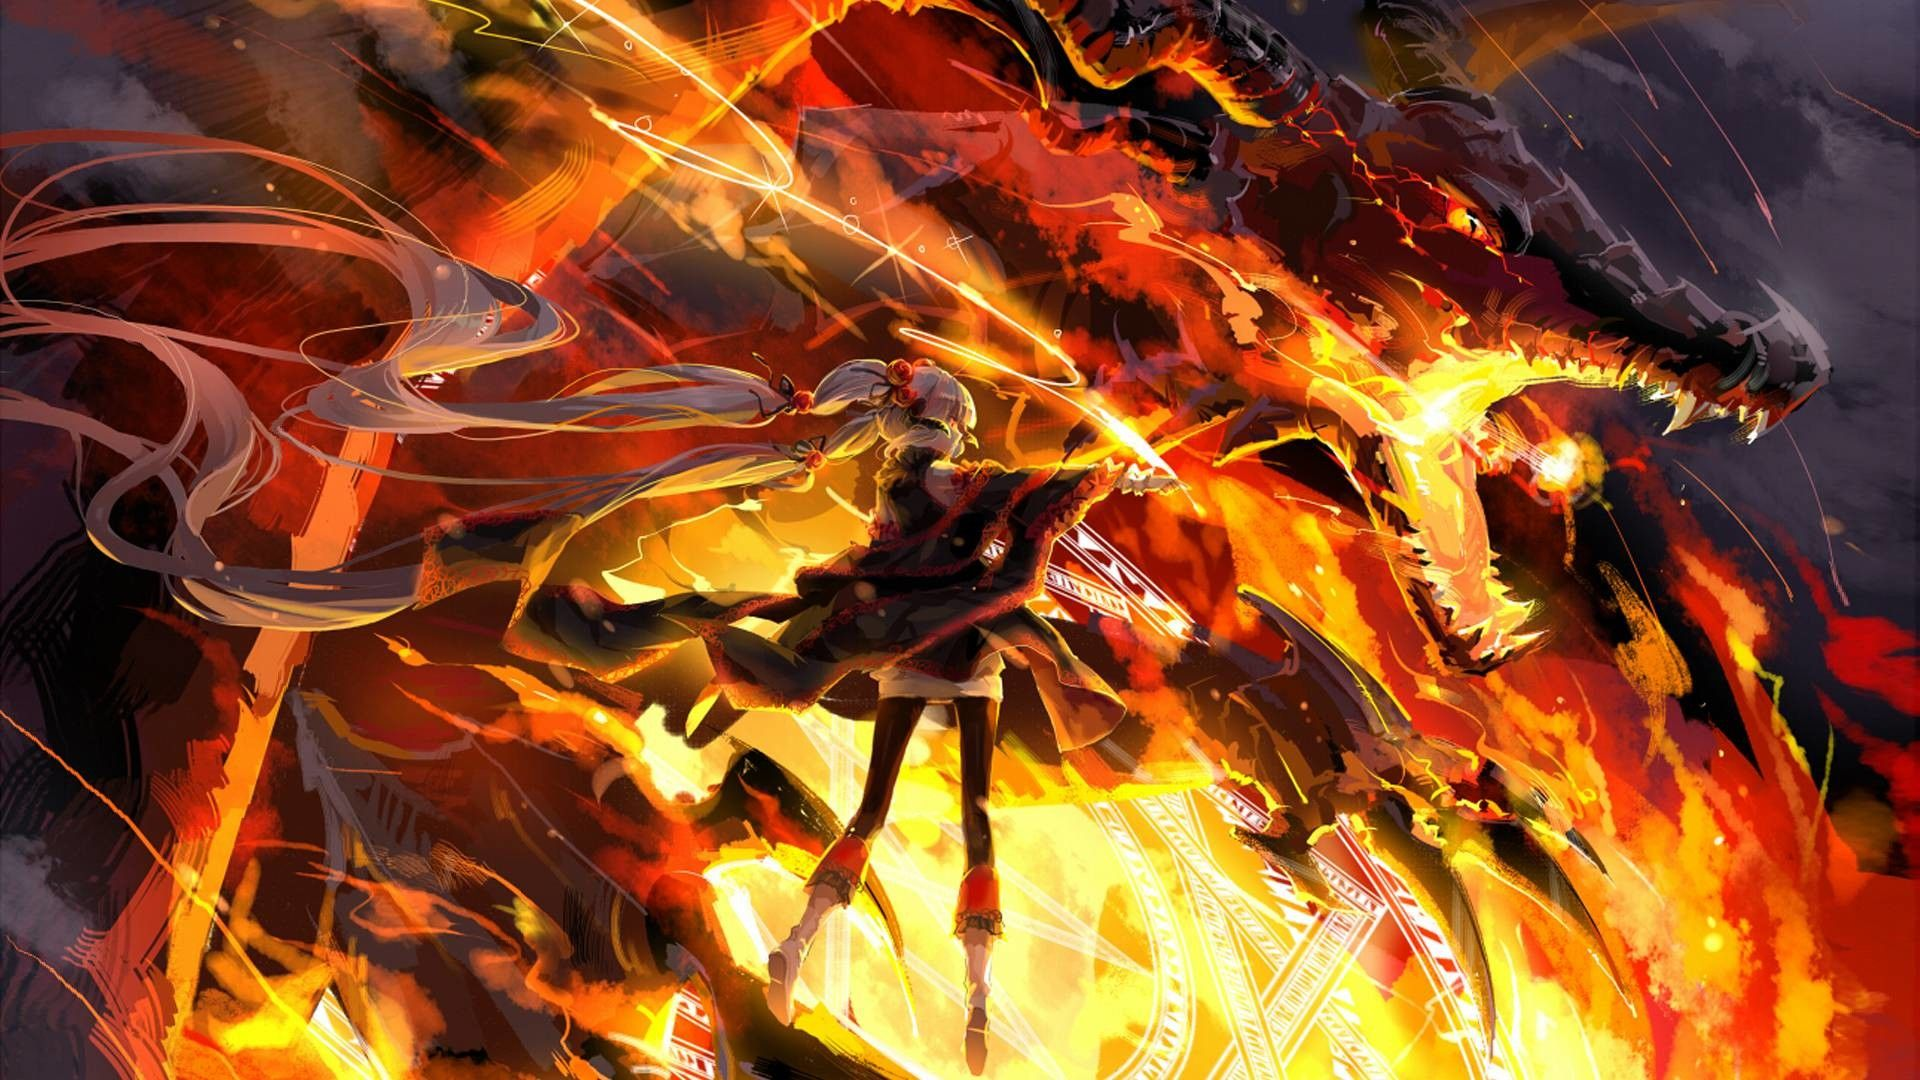 Anime Dragon Wallpapers Top Free Anime Dragon Backgrounds